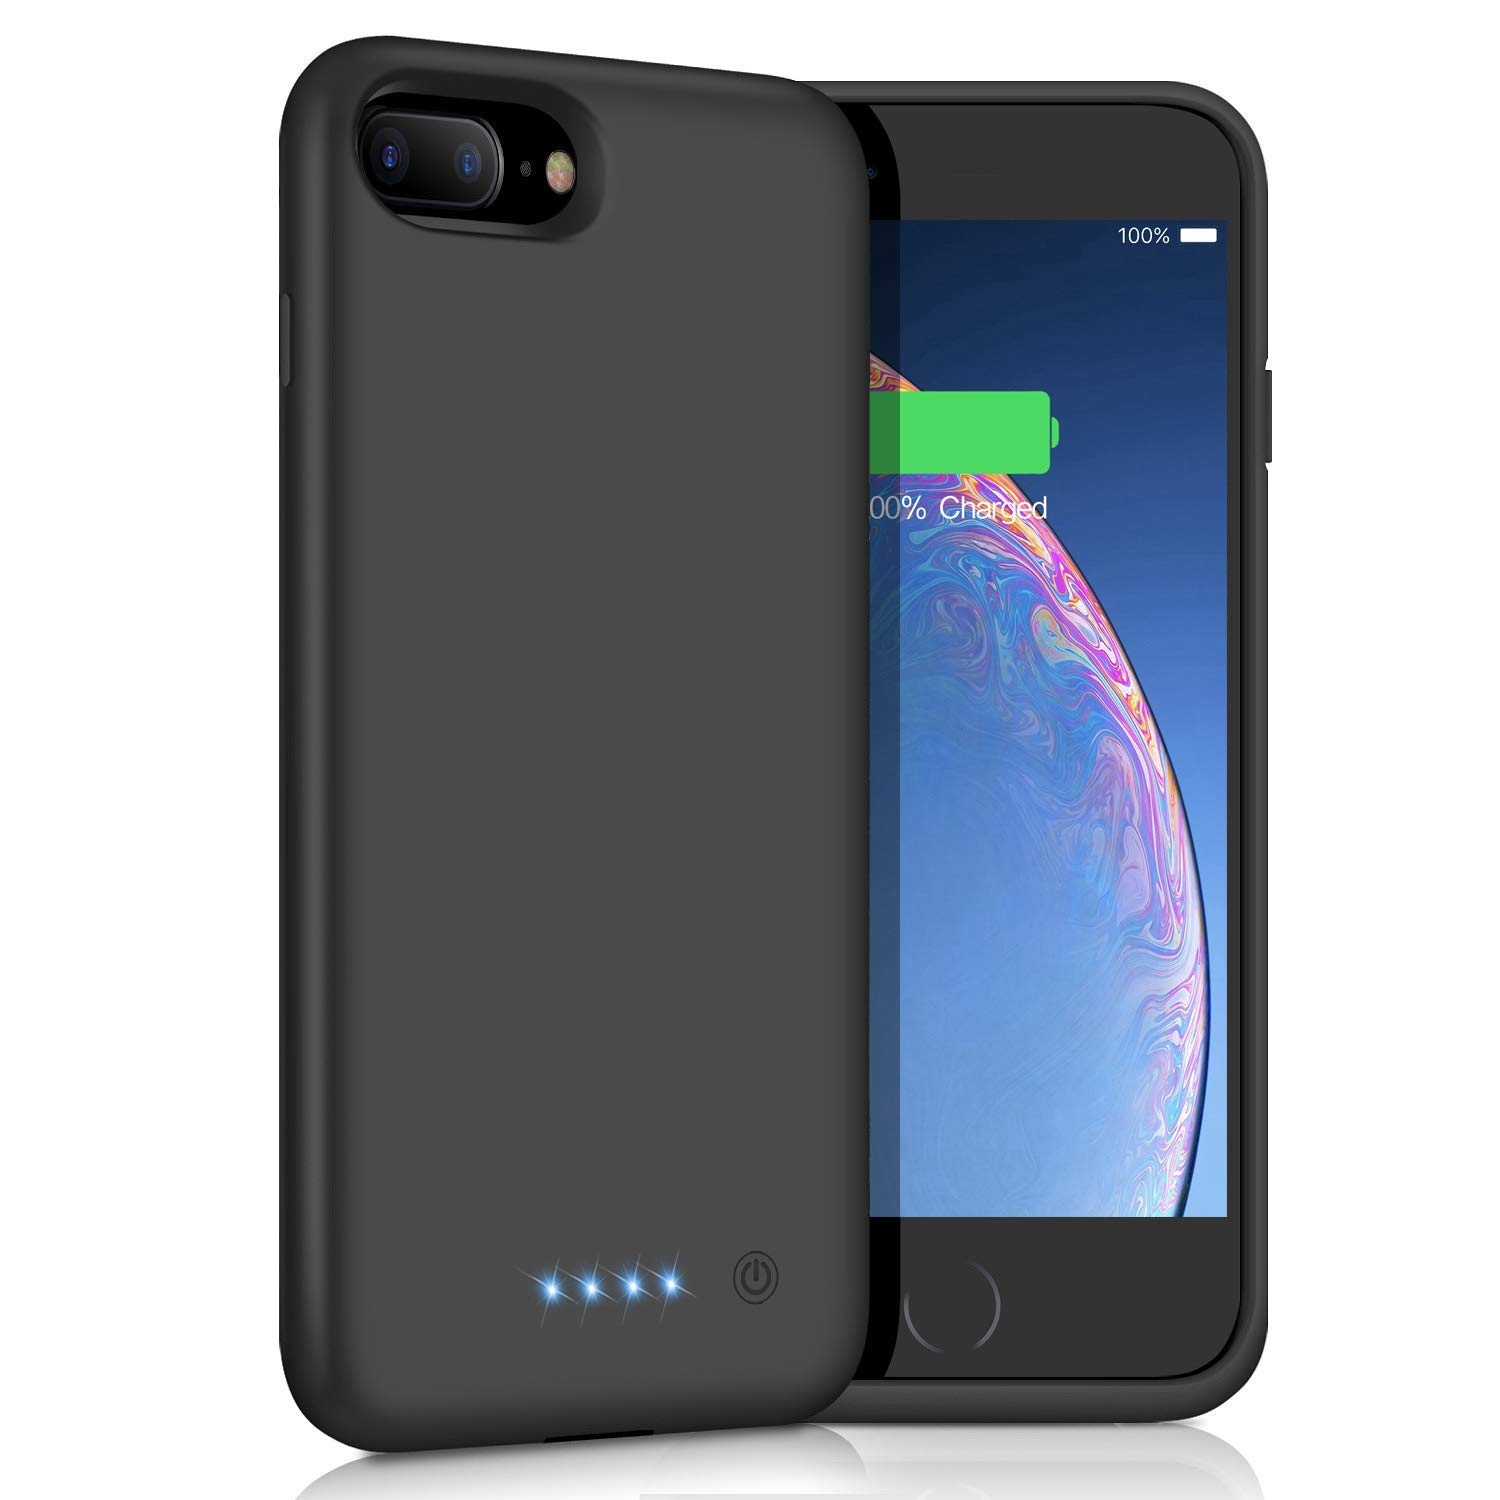 Battery Case for iPhone 8 Plus/7 Plus, [8500mAh] Xooparc Protective Portable Charging Case Rechargeable Extended Battery Pack for Apple iPhone 8 Plus&7 Plus (5.5') Backup Power Bank Cover - Black by Xooparc (Image #9)